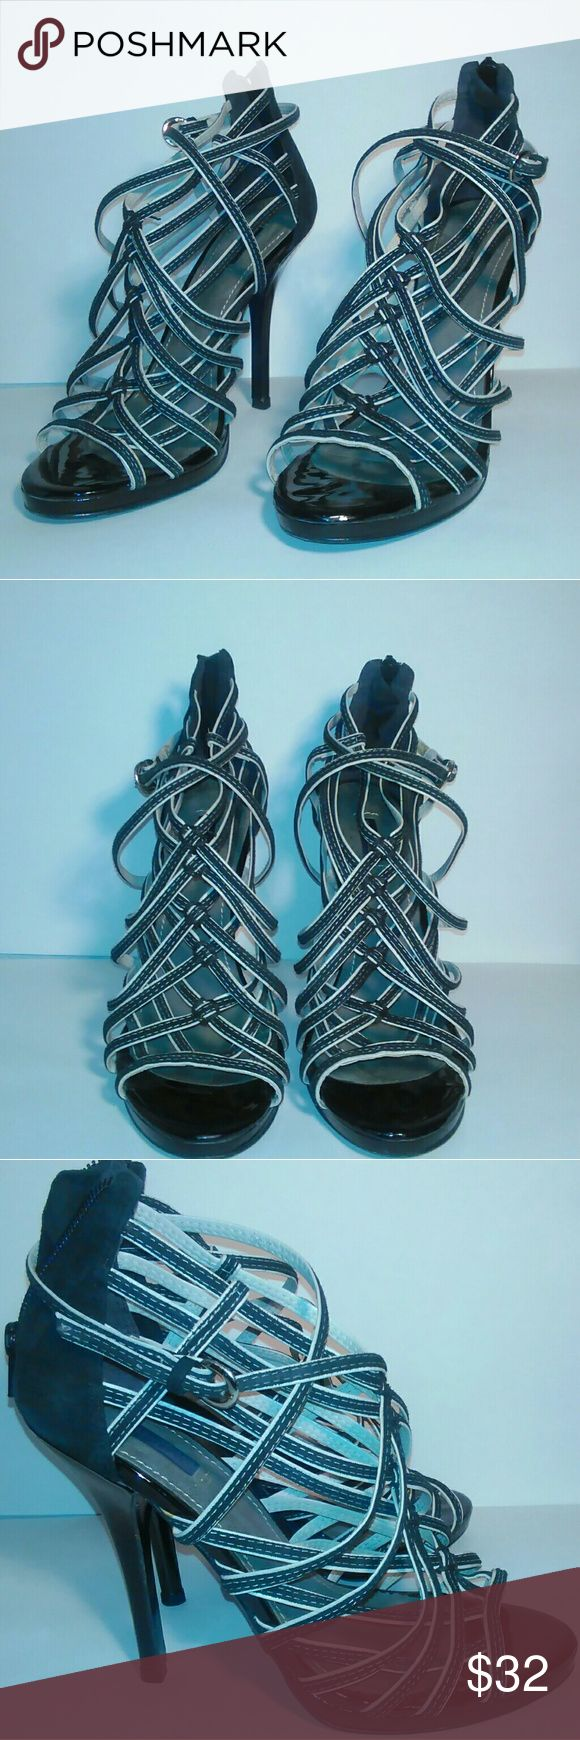 Kurt Geiger Heels Very cute strappy black & white Kurt Geiger sandal heels. Excellent condition! Kurt Geiger Shoes Heels